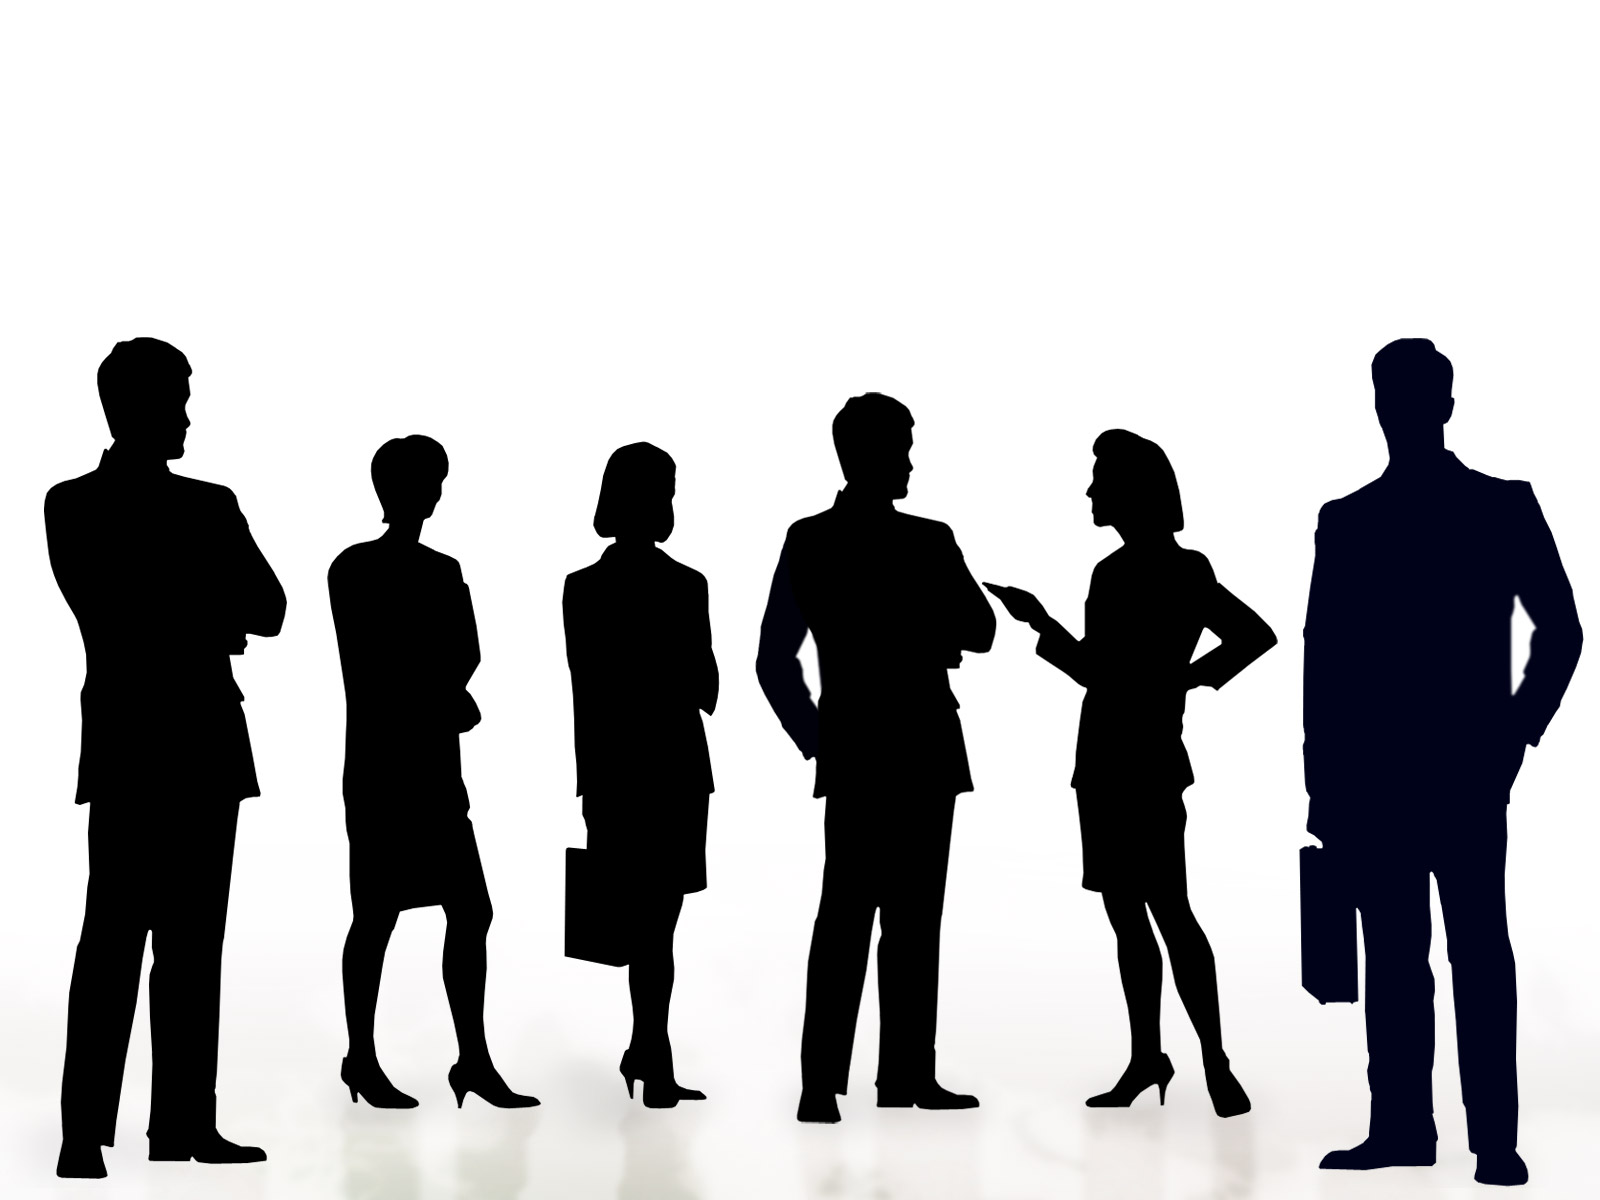 Crowd clipart shadow. Business people free